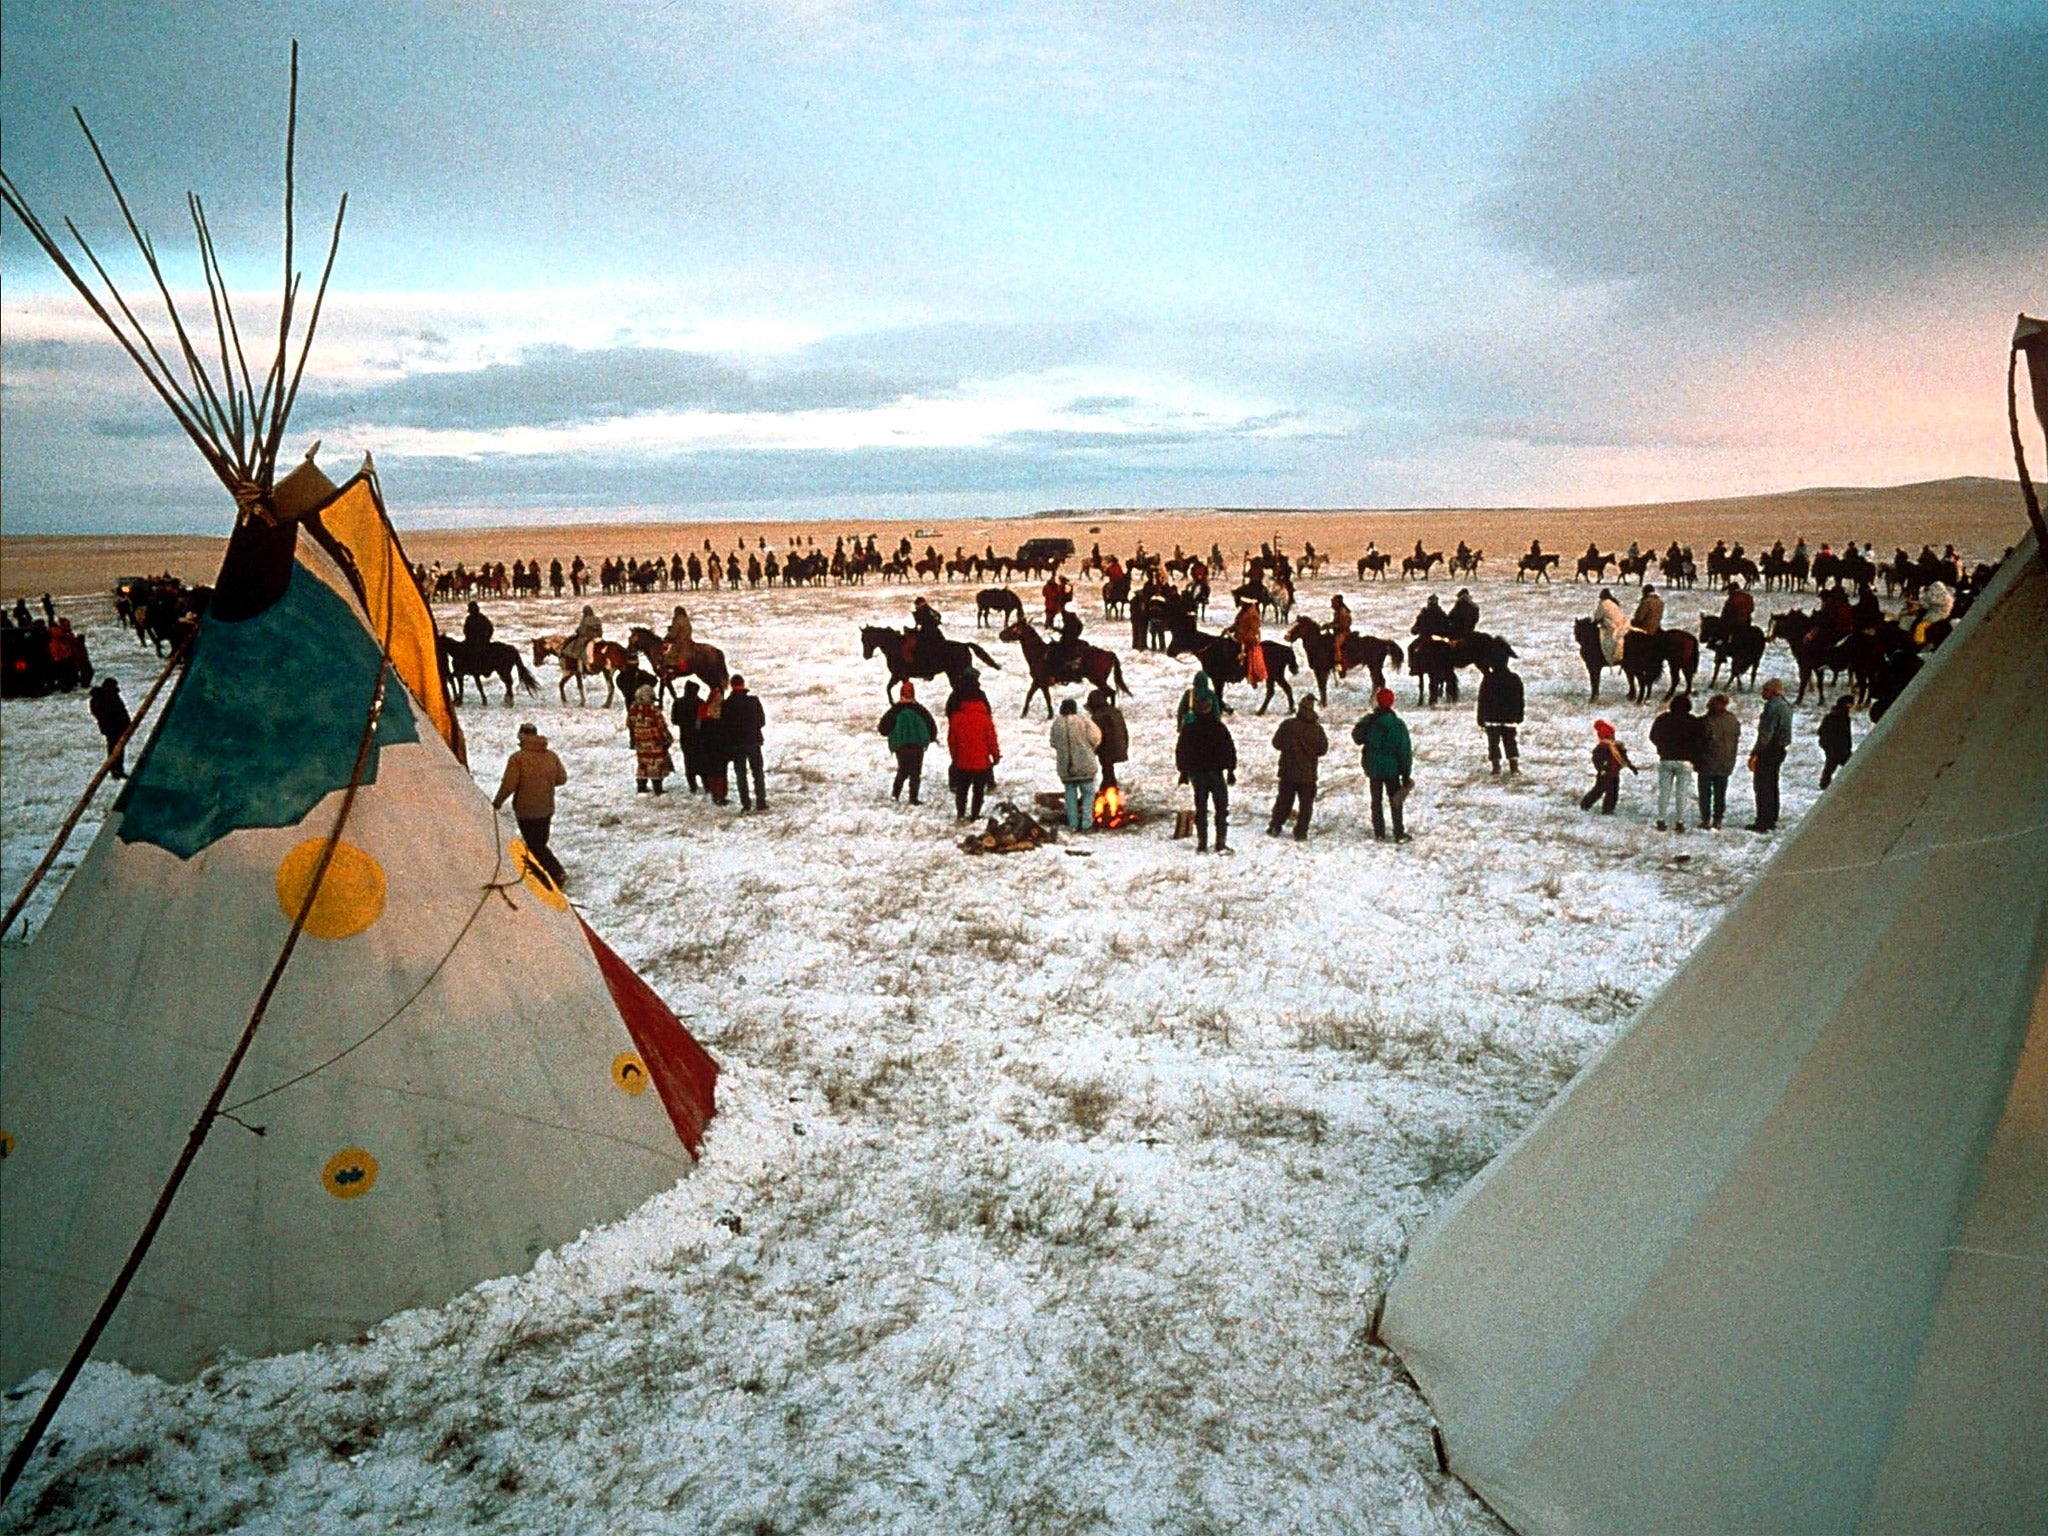 wounded knee senior singles While the value of human life cannot be quantified, it is important to remember wounded knee and other massacres in.